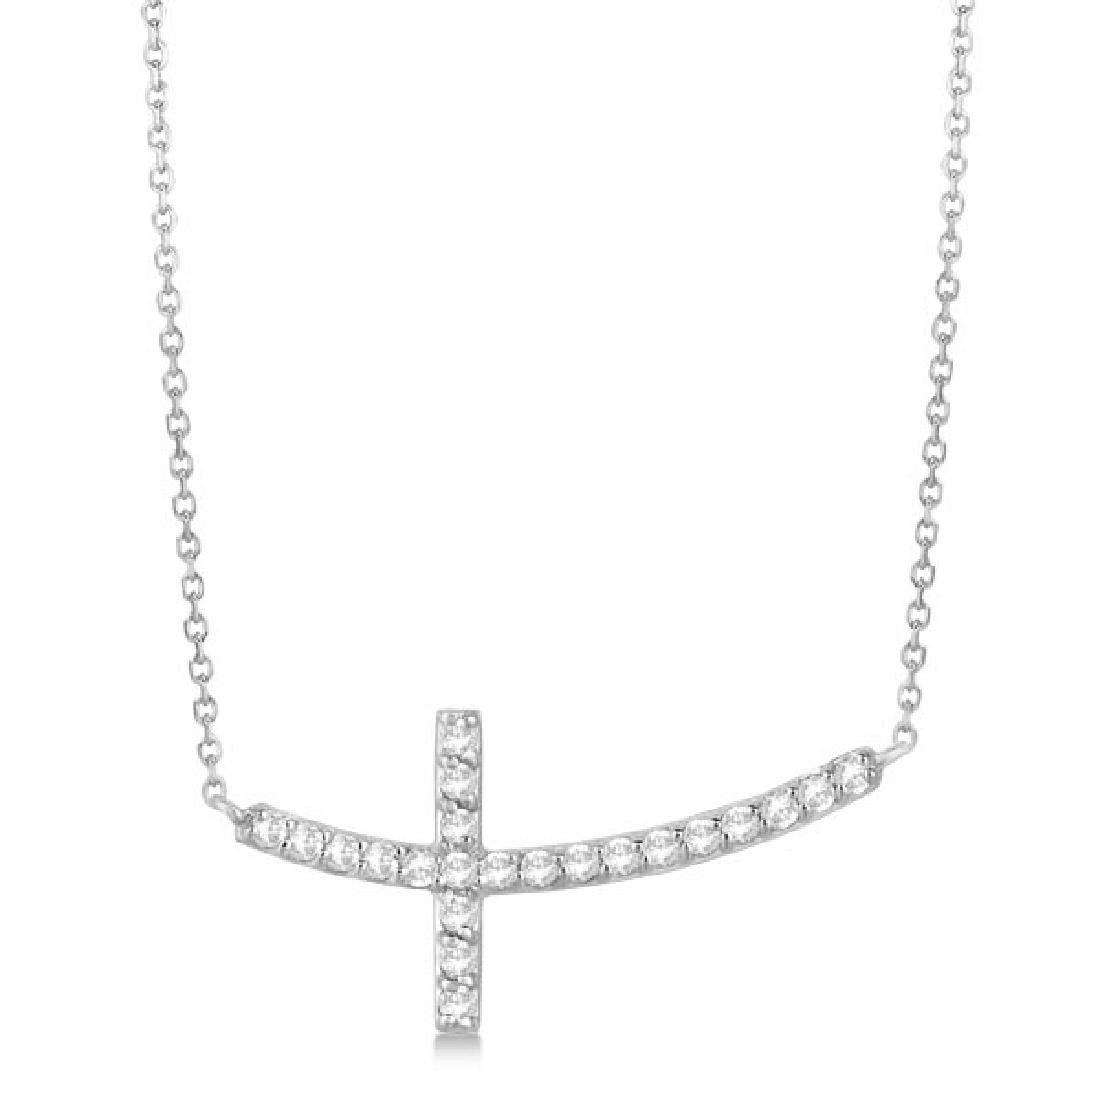 Diamond Sideways Curved Cross Pendant Necklace 14k Whit